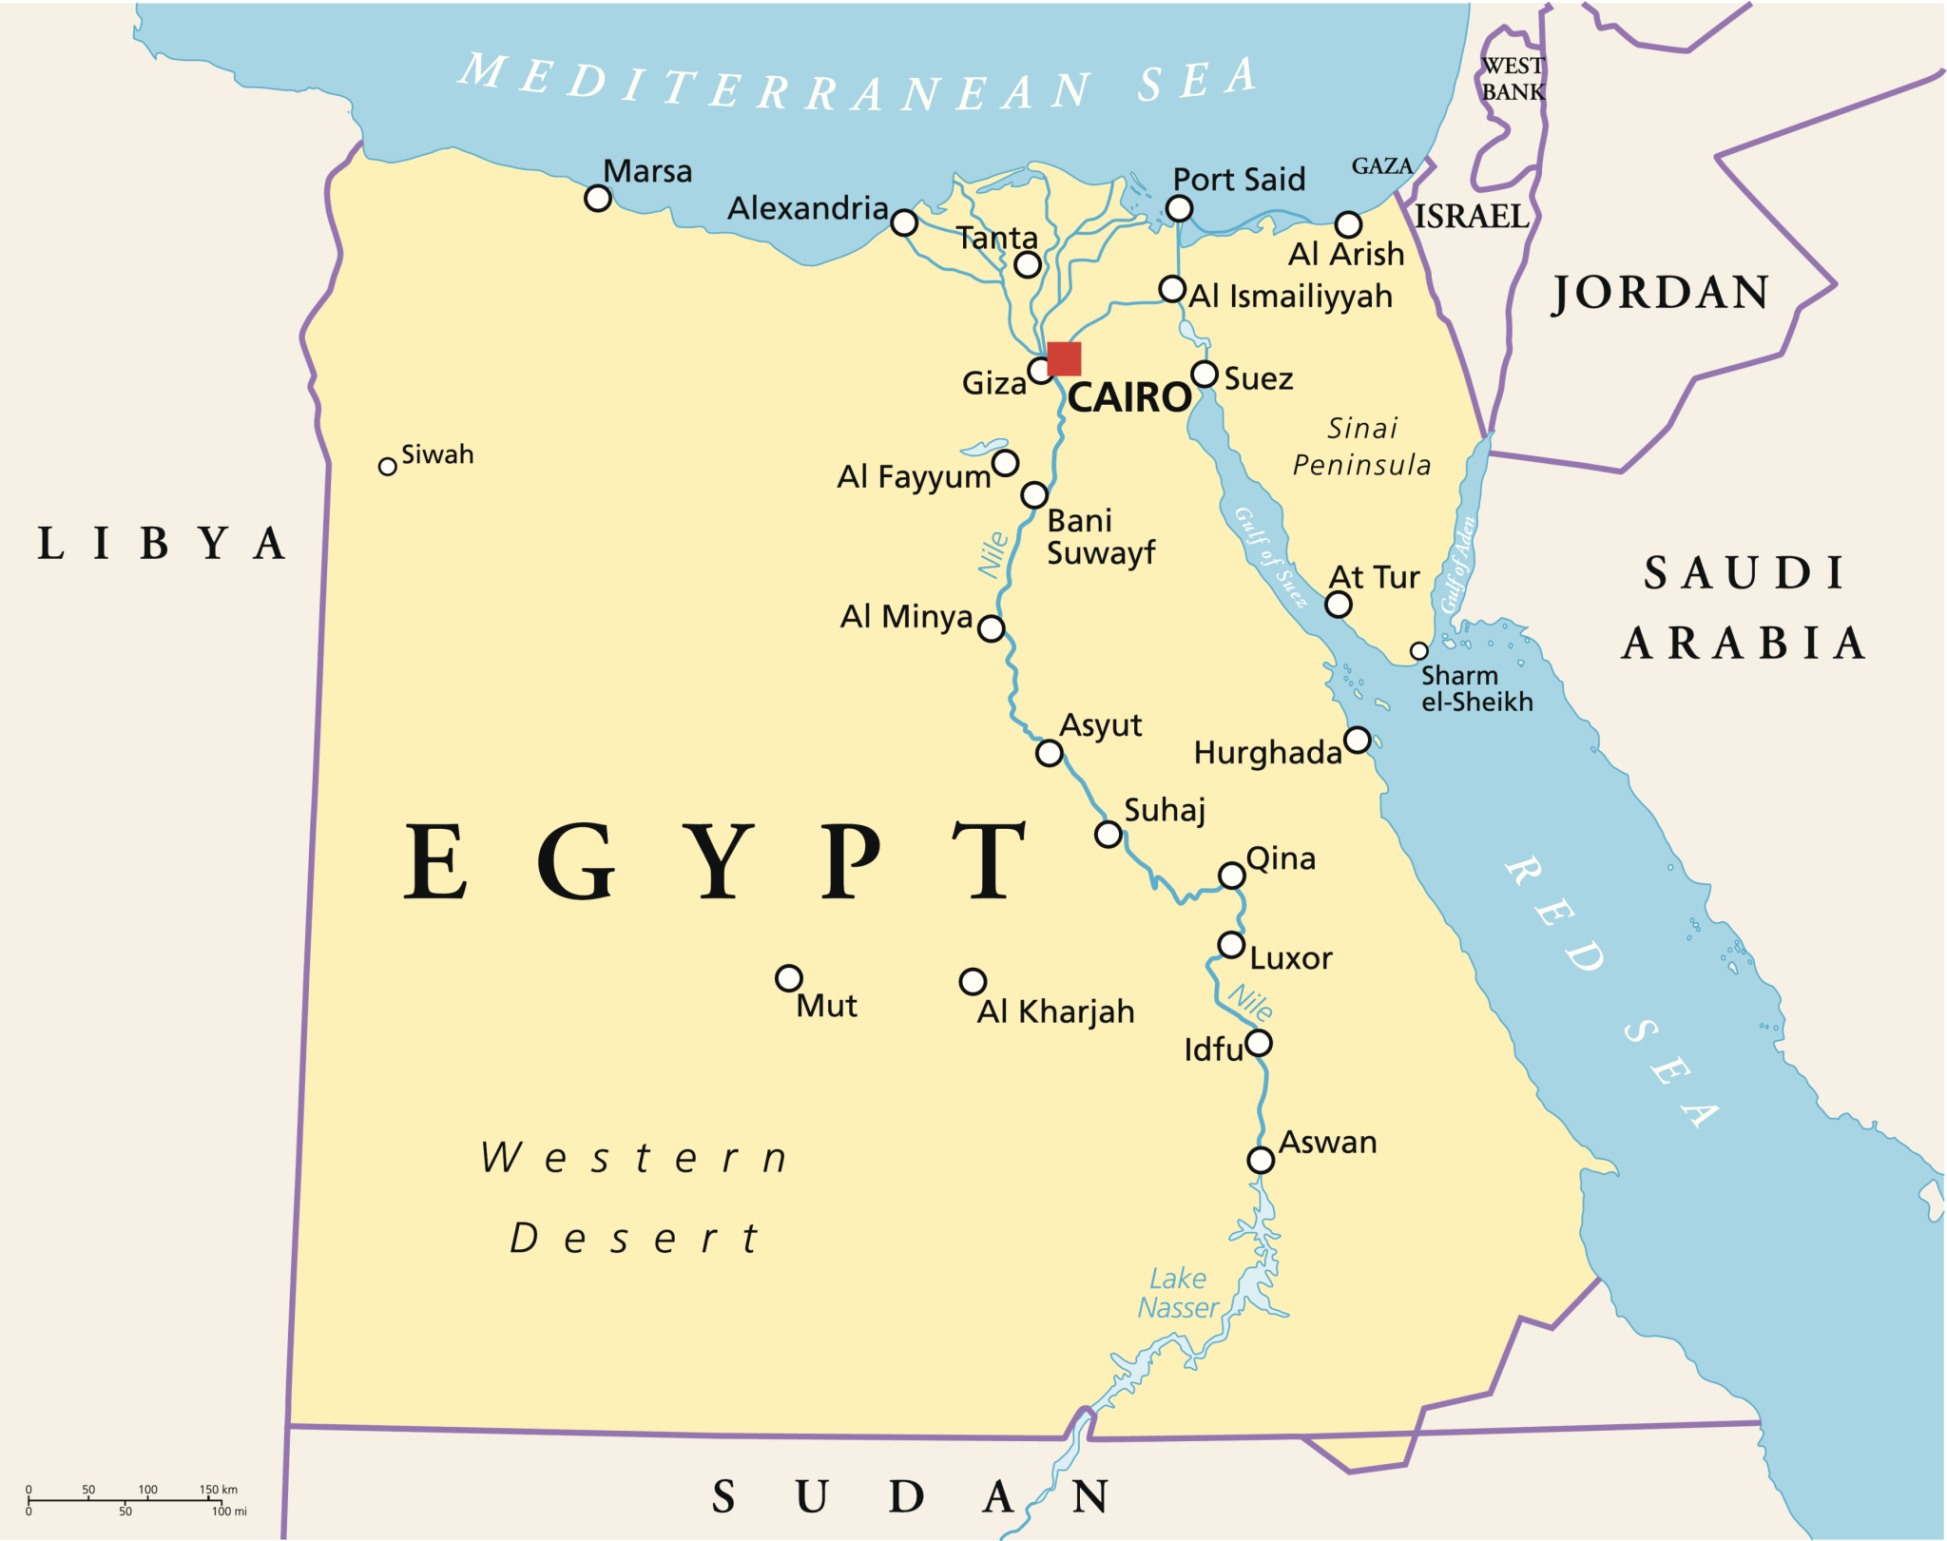 Egypts Suez Canal Corridor Project Mega Project of the Century